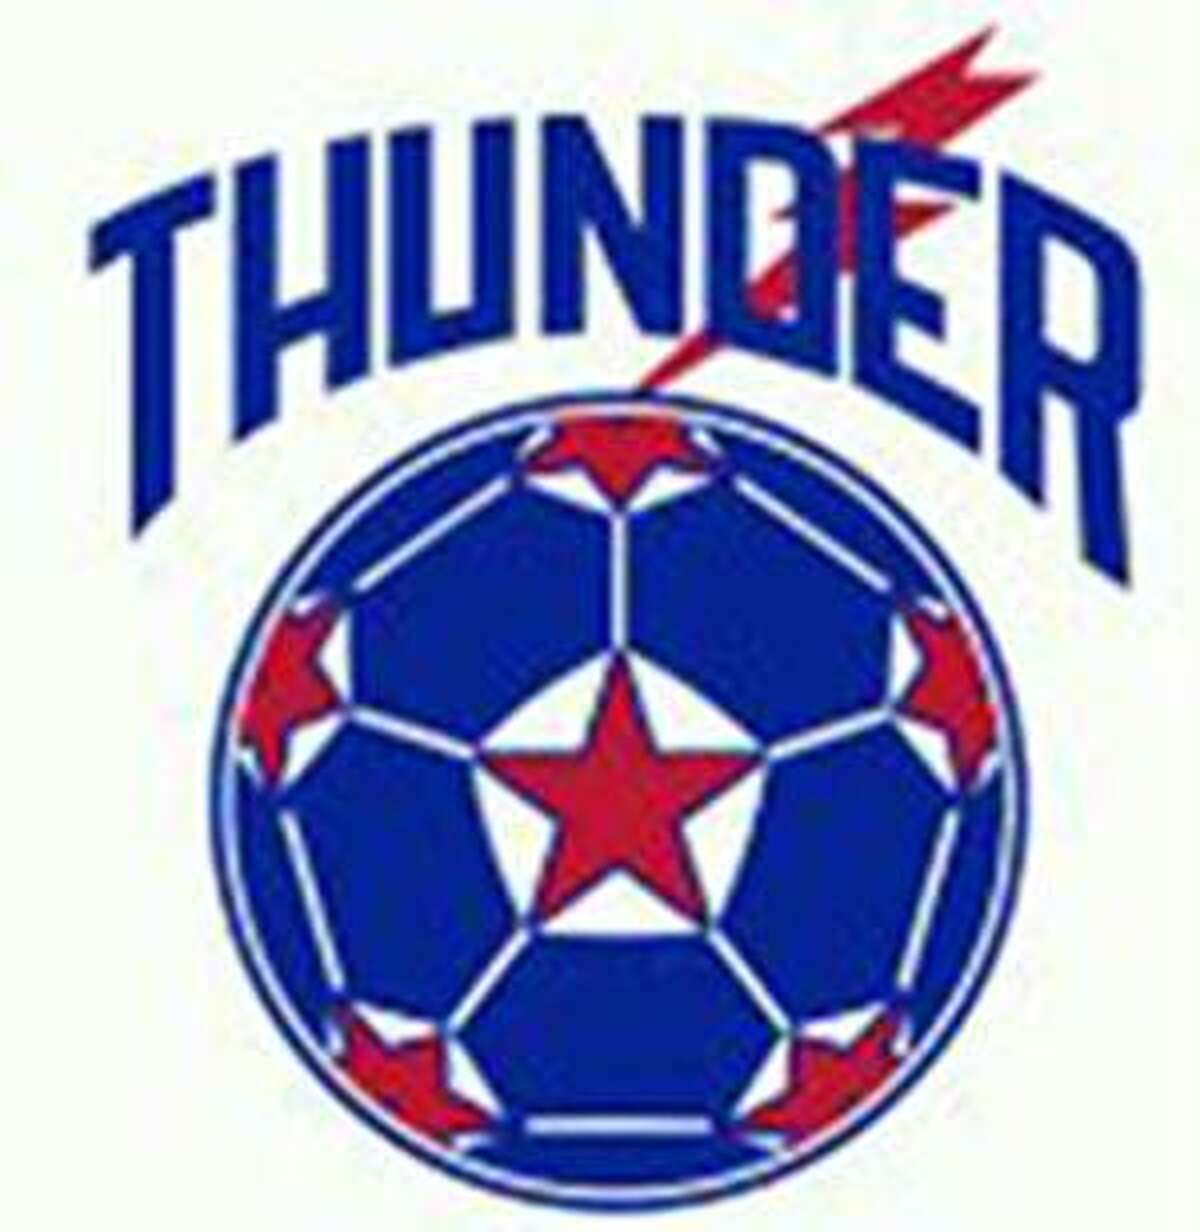 SA FC LLC, the Spurs group that owns San Antonio's soccer franchise, wants to trademark this logo.